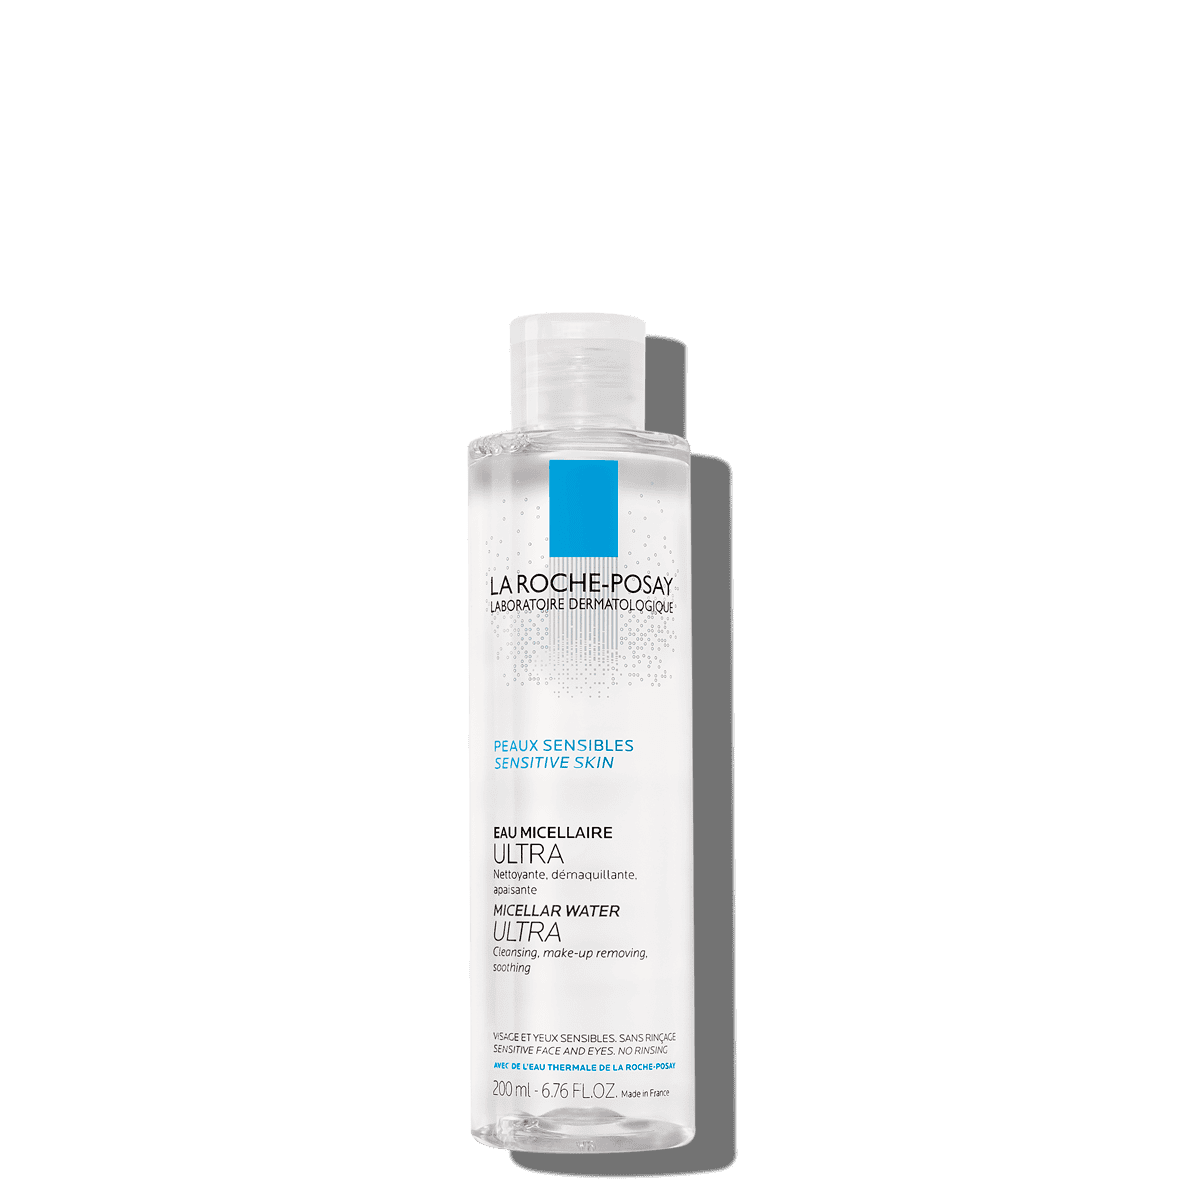 La Roche Posay ProductPage Face Cleanser Physiological Micellar Ultra